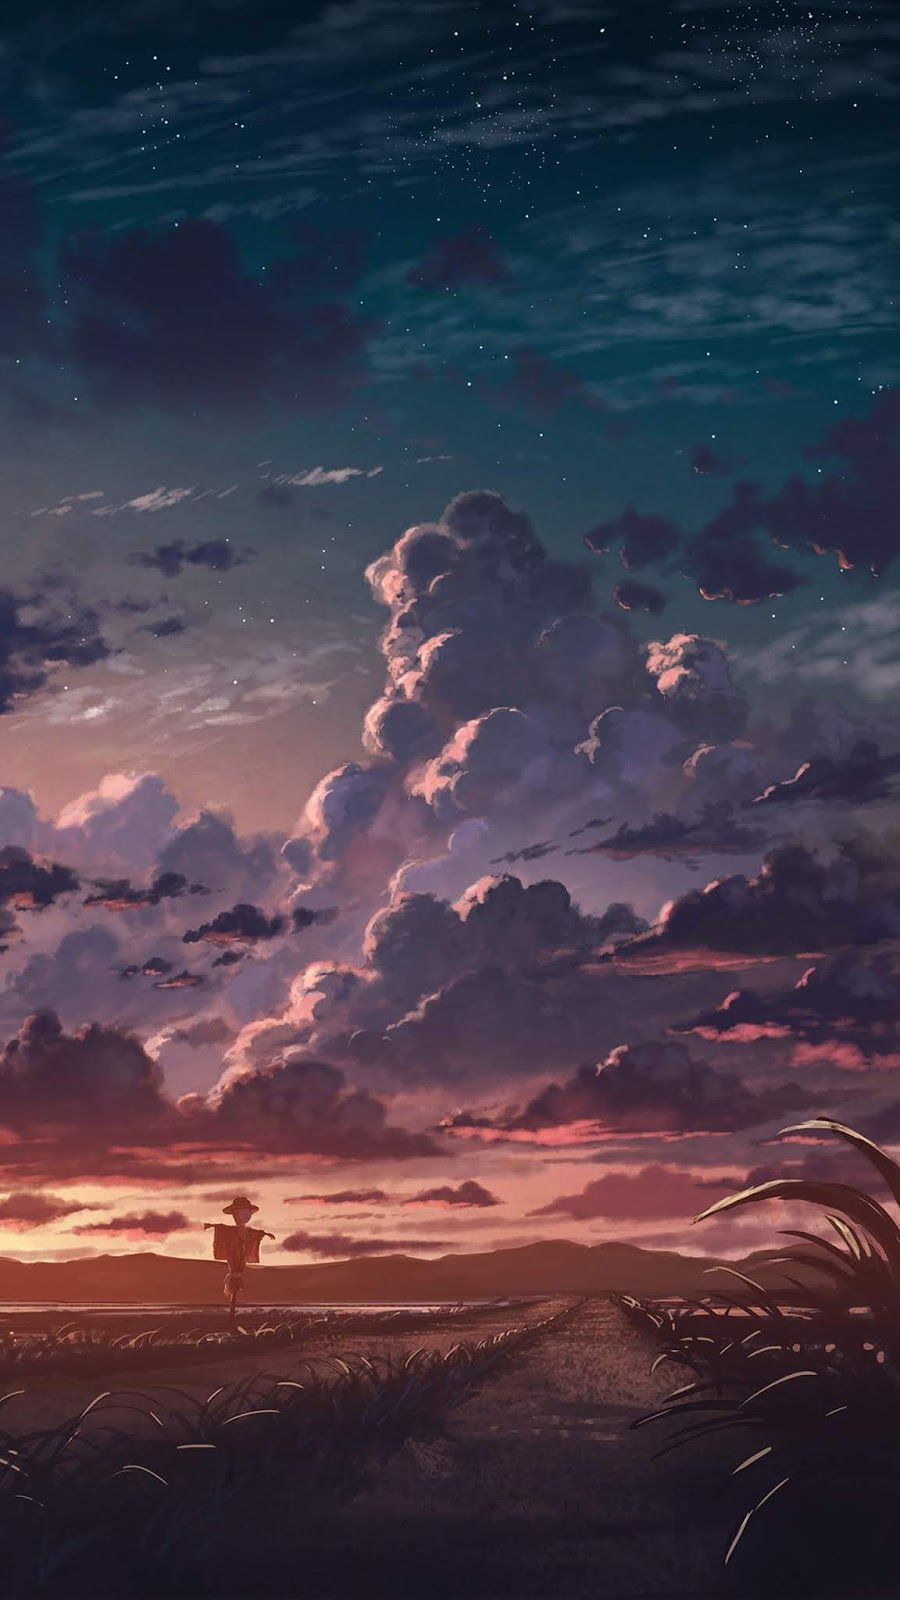 Cloudy Sunset Anime Scenery Wallpaper Scenery Wallpaper Digital Painting